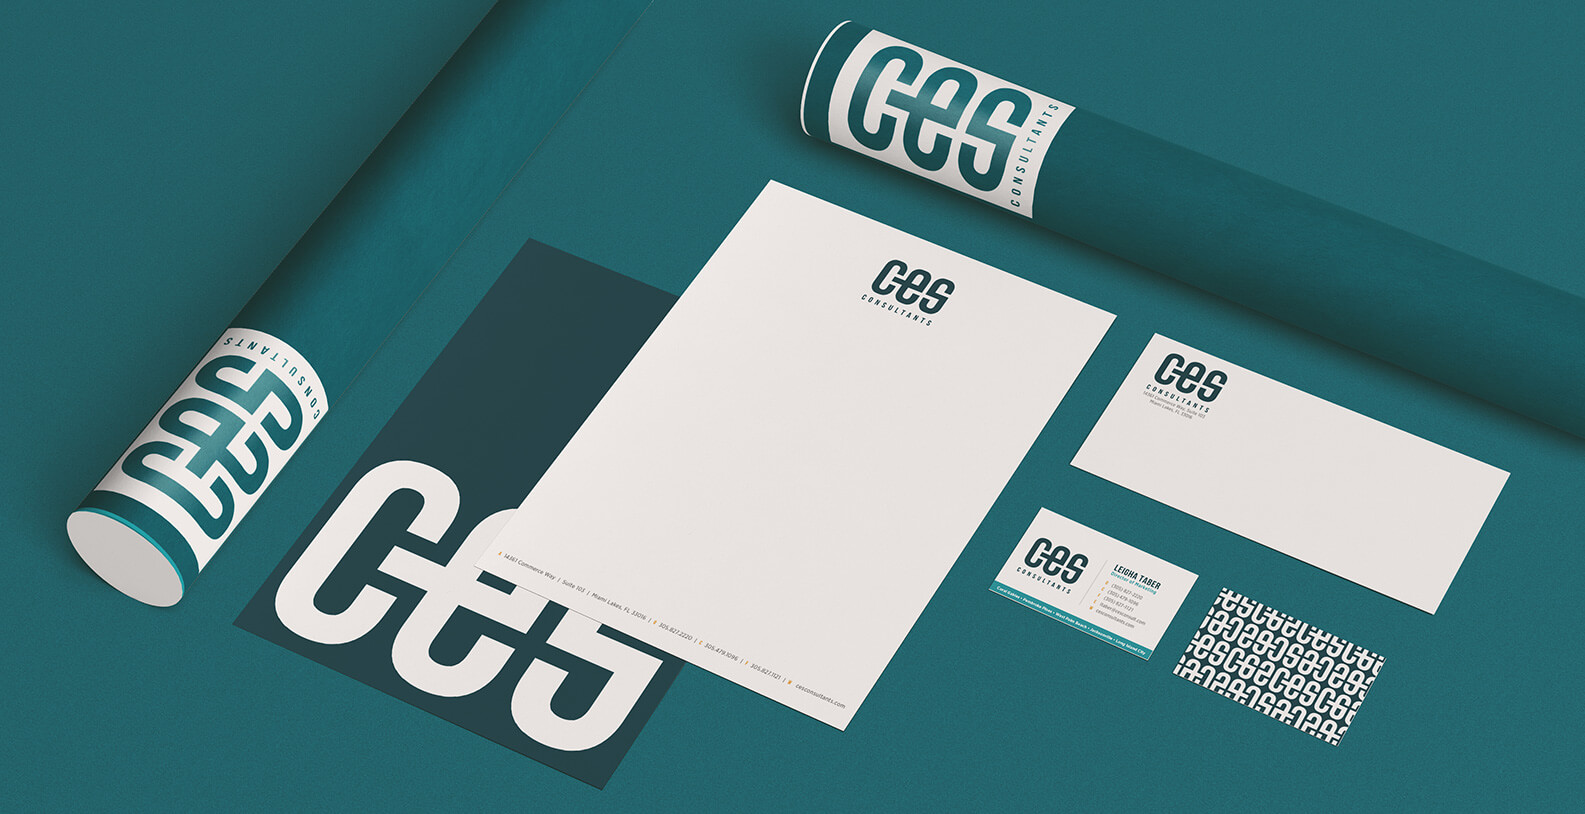 CES Consulting branded stationery by Jacober Creative